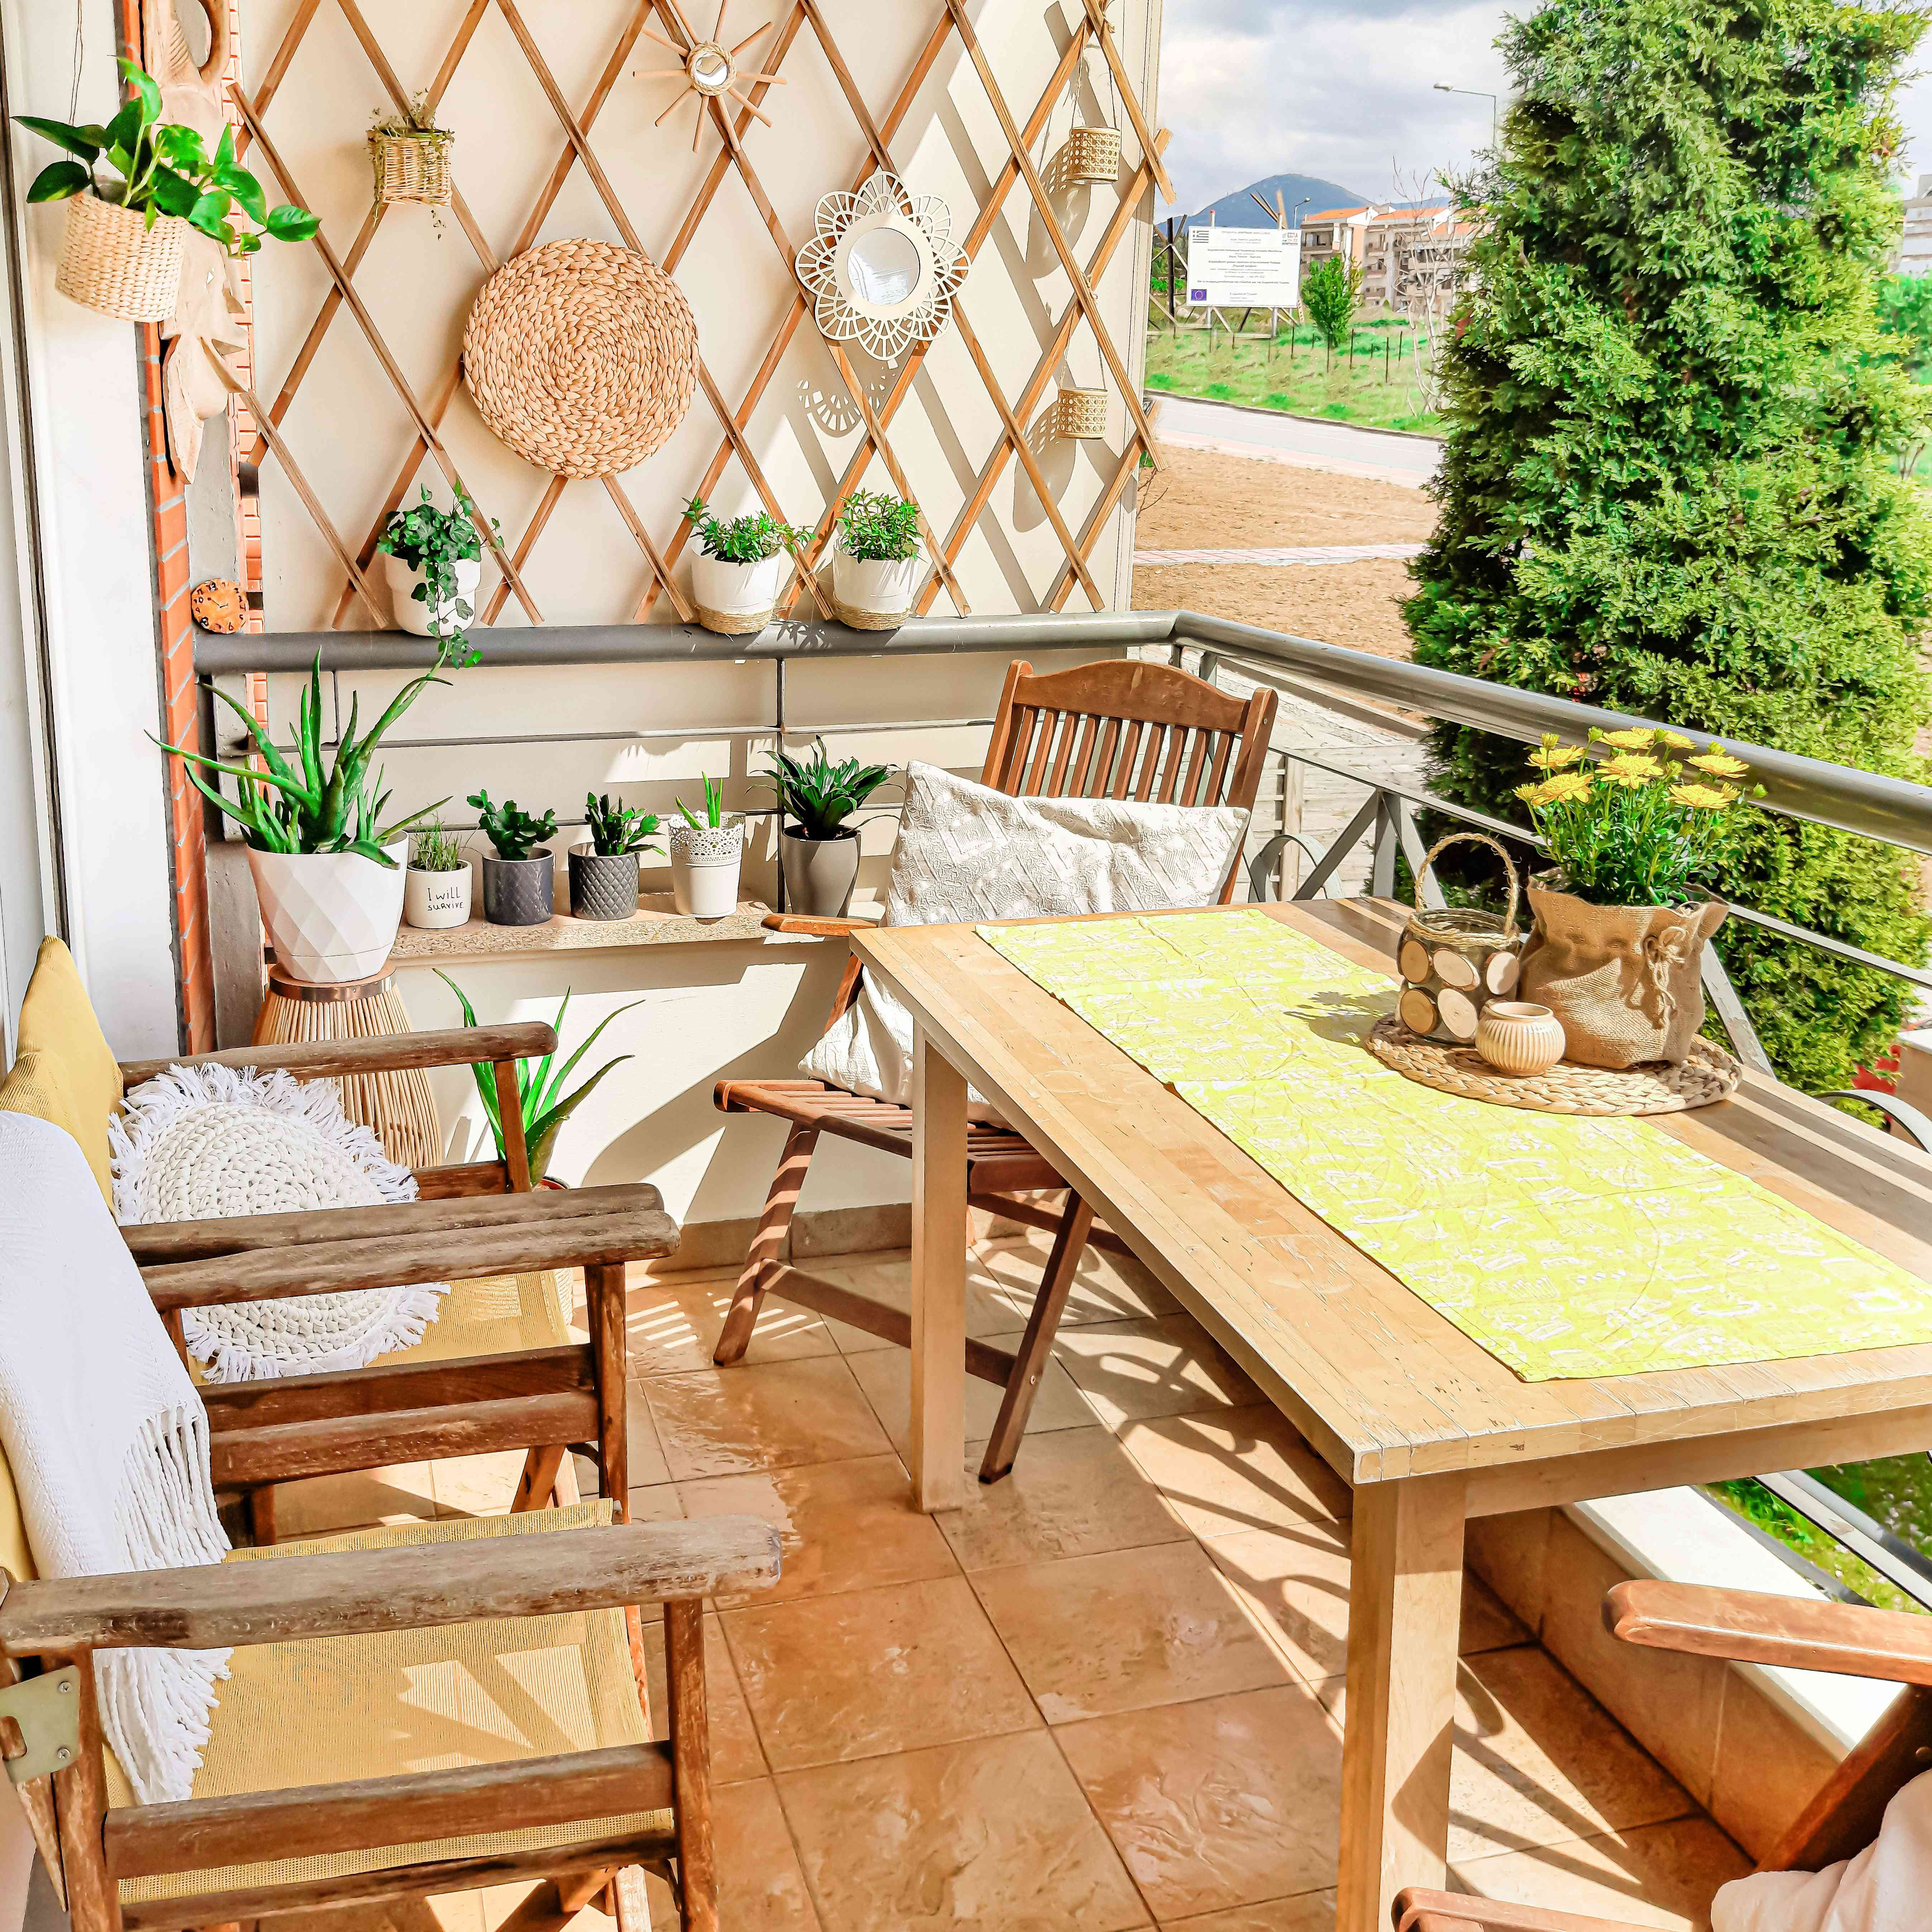 the patio features tiled floor and lots of plants